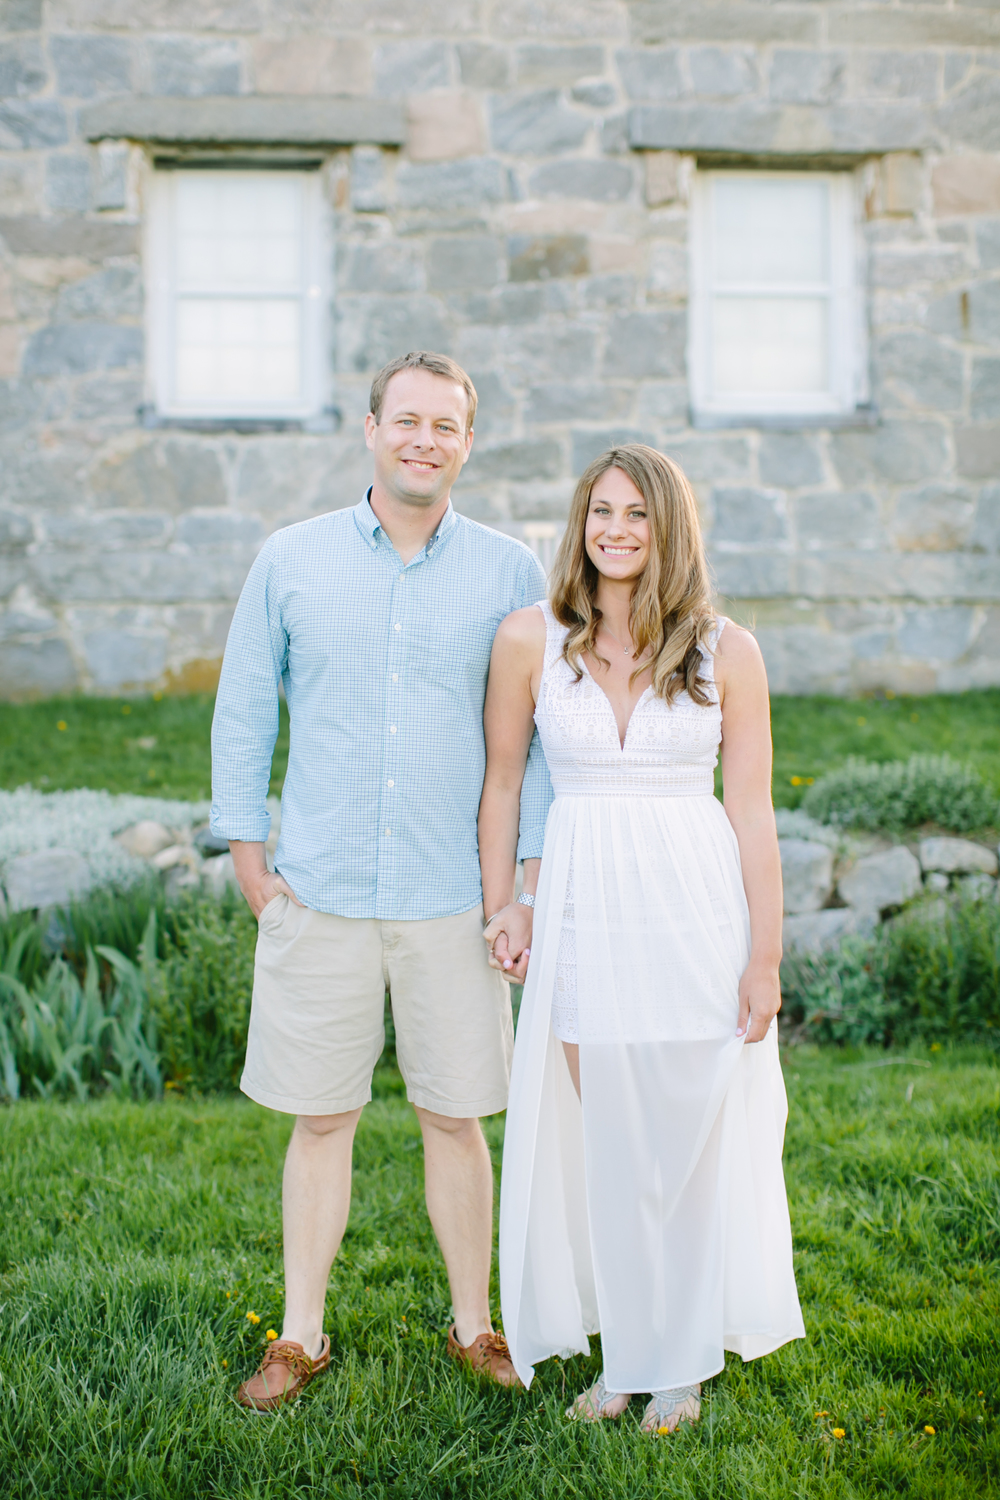 stonington-connecticut-CT- engagement-photos-01.jpg